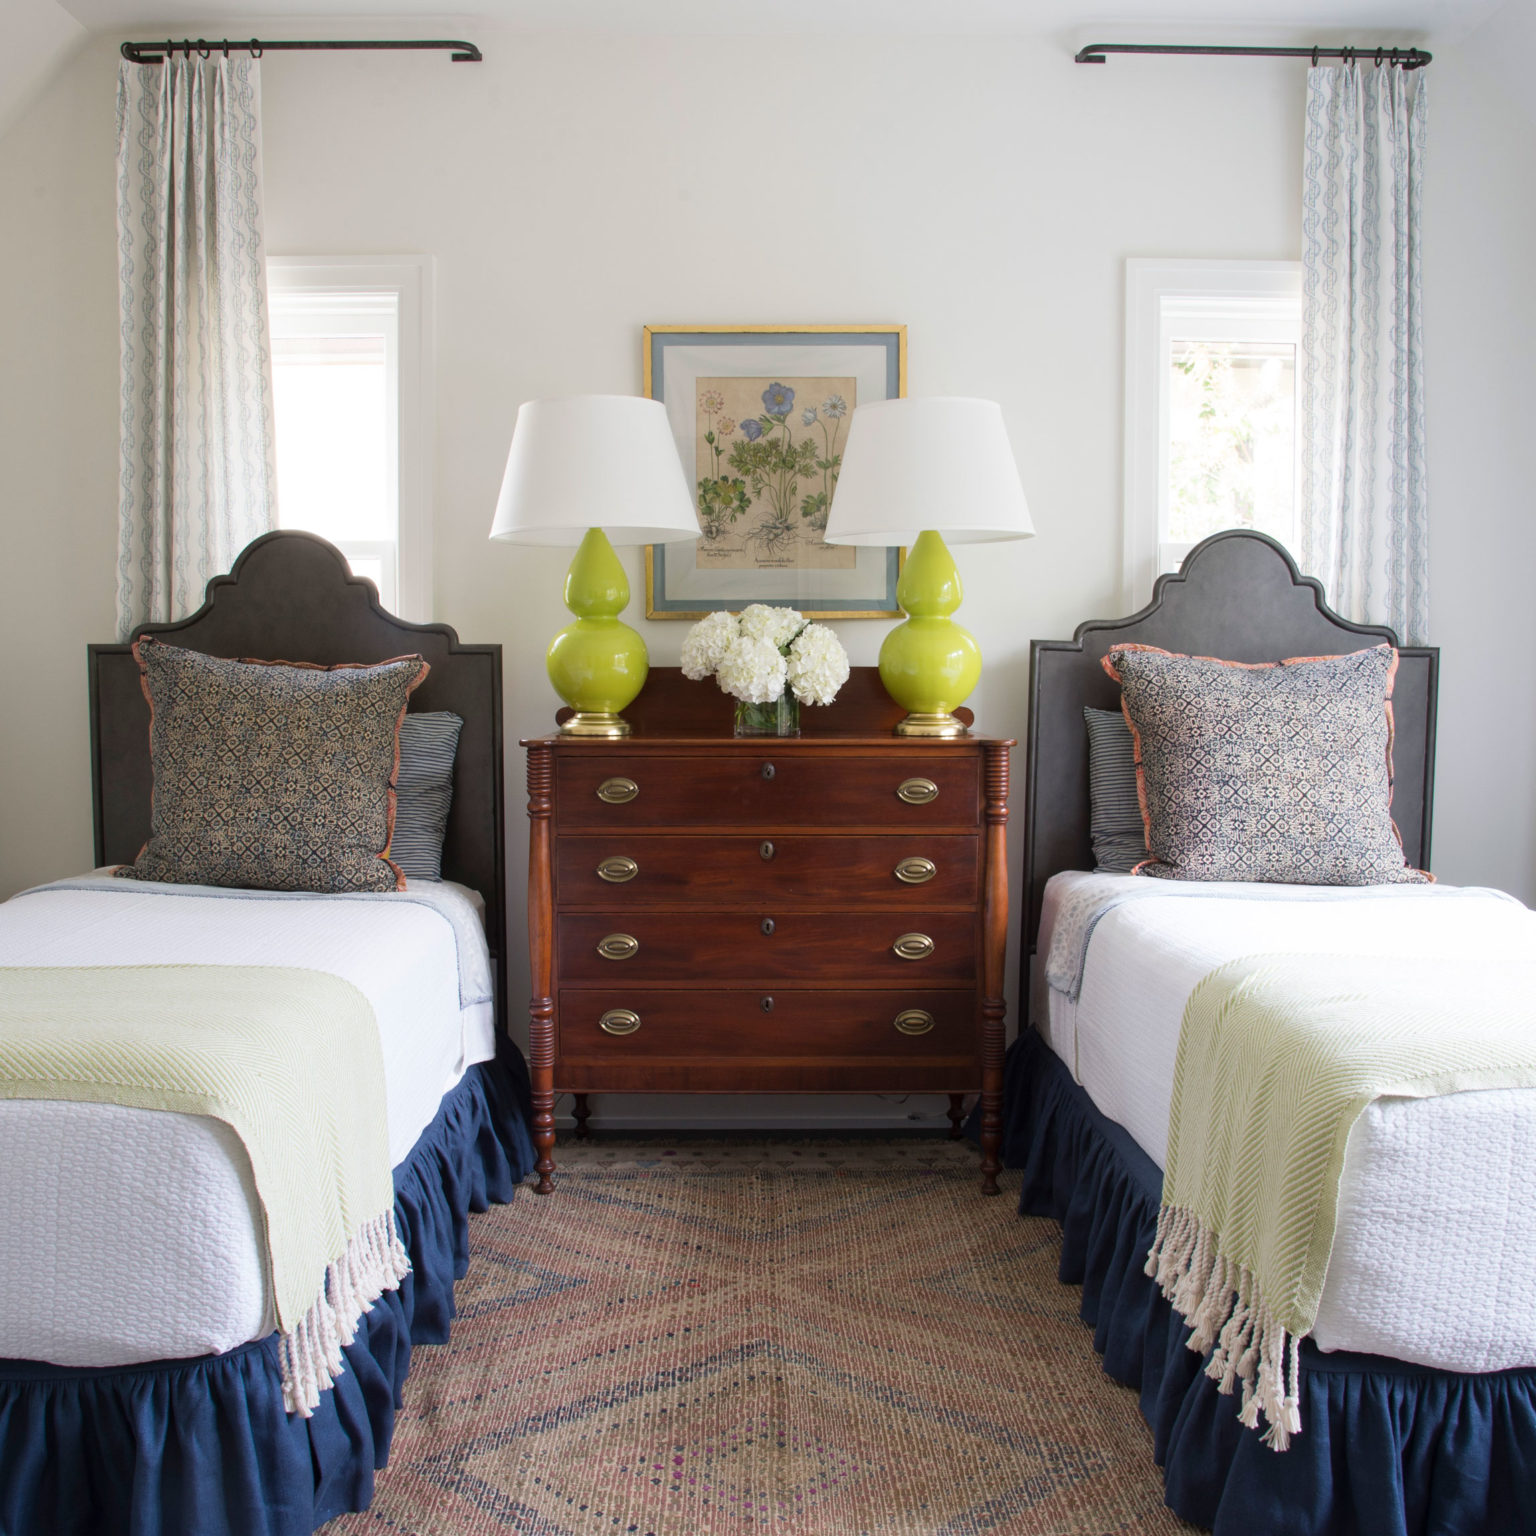 Twosdays – 1 room 2 price points – Lively Guest Room